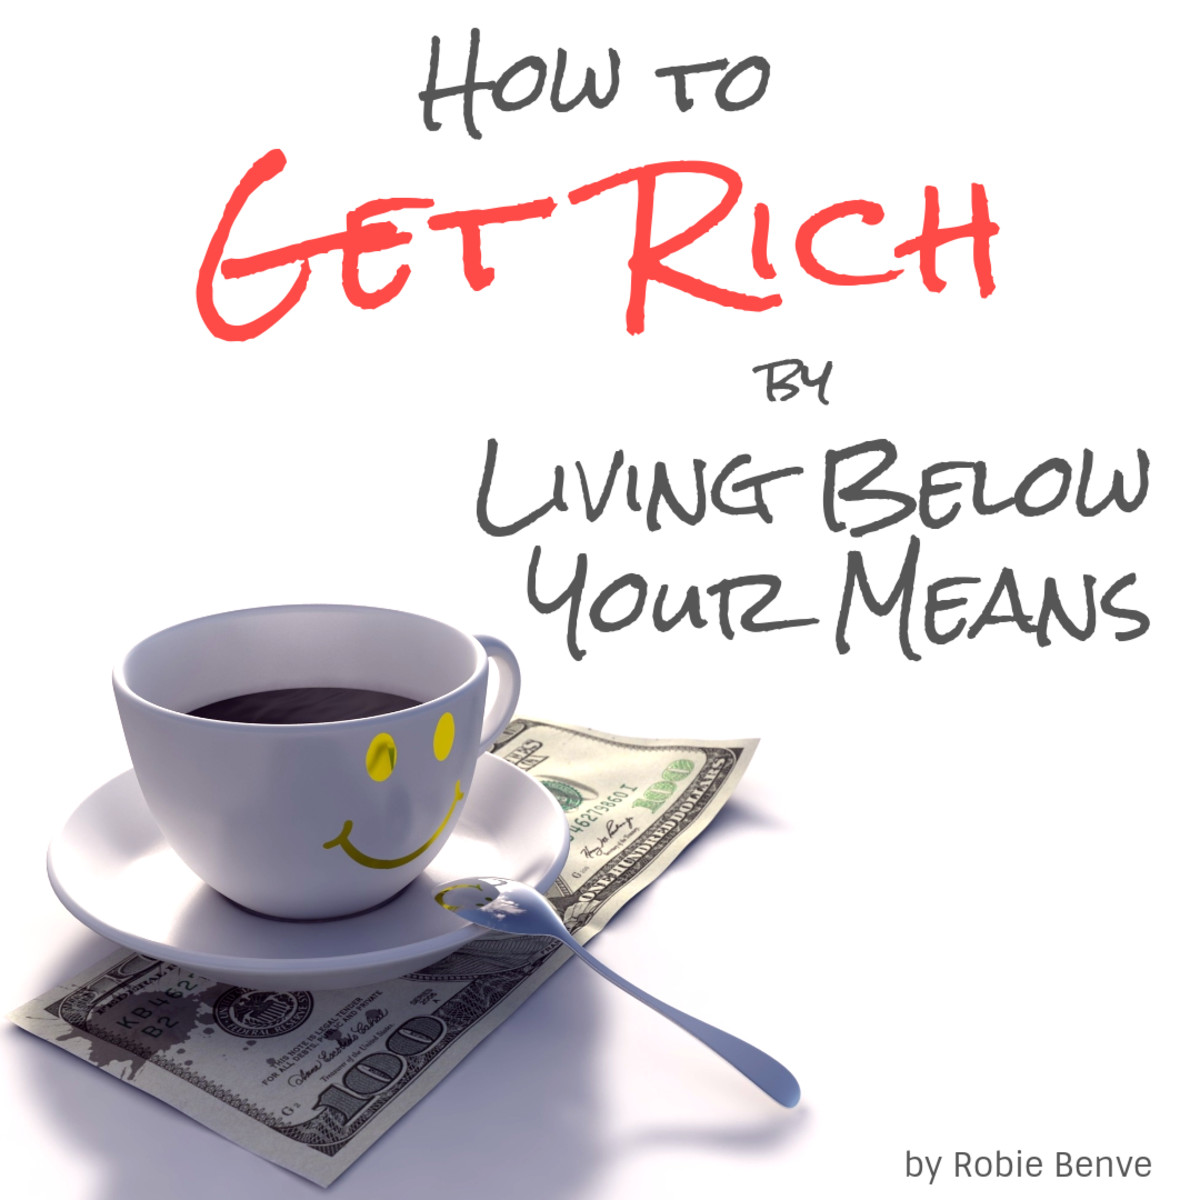 How to Get Rich by Living Below Your Means